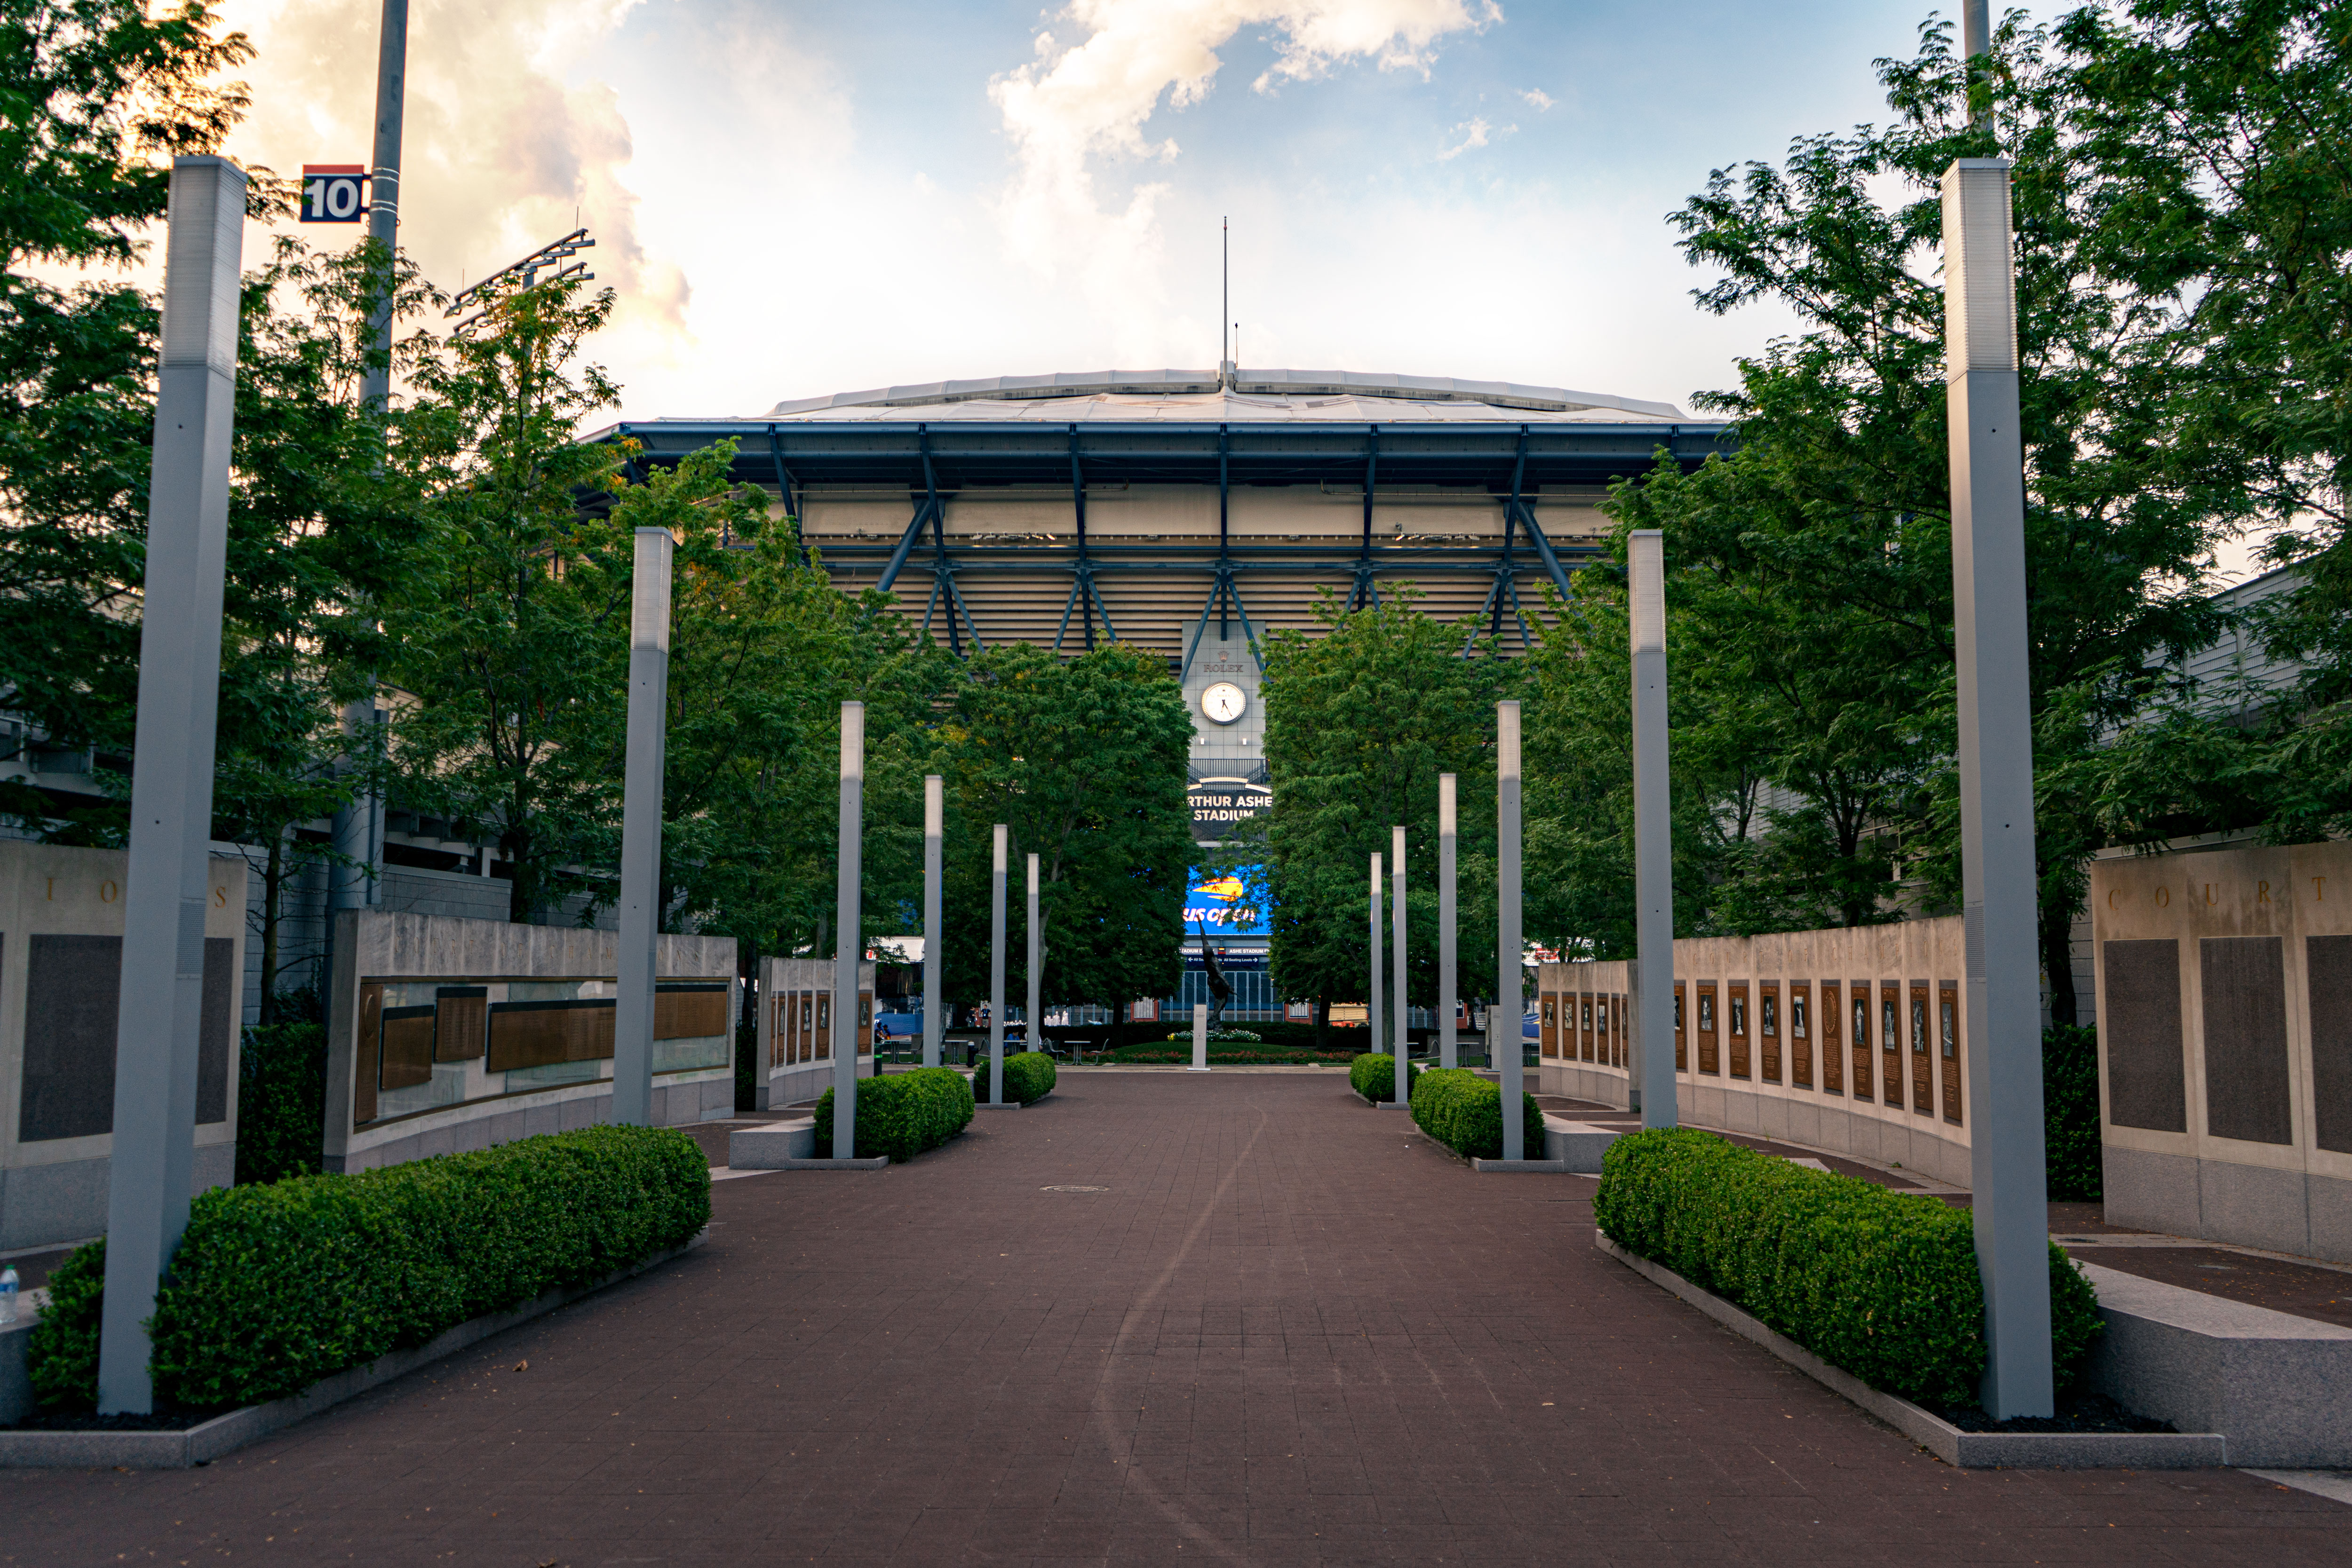 Arthur Ashe stadium site of the US Open in Flushing Meadows, Queens on August 26, 2021